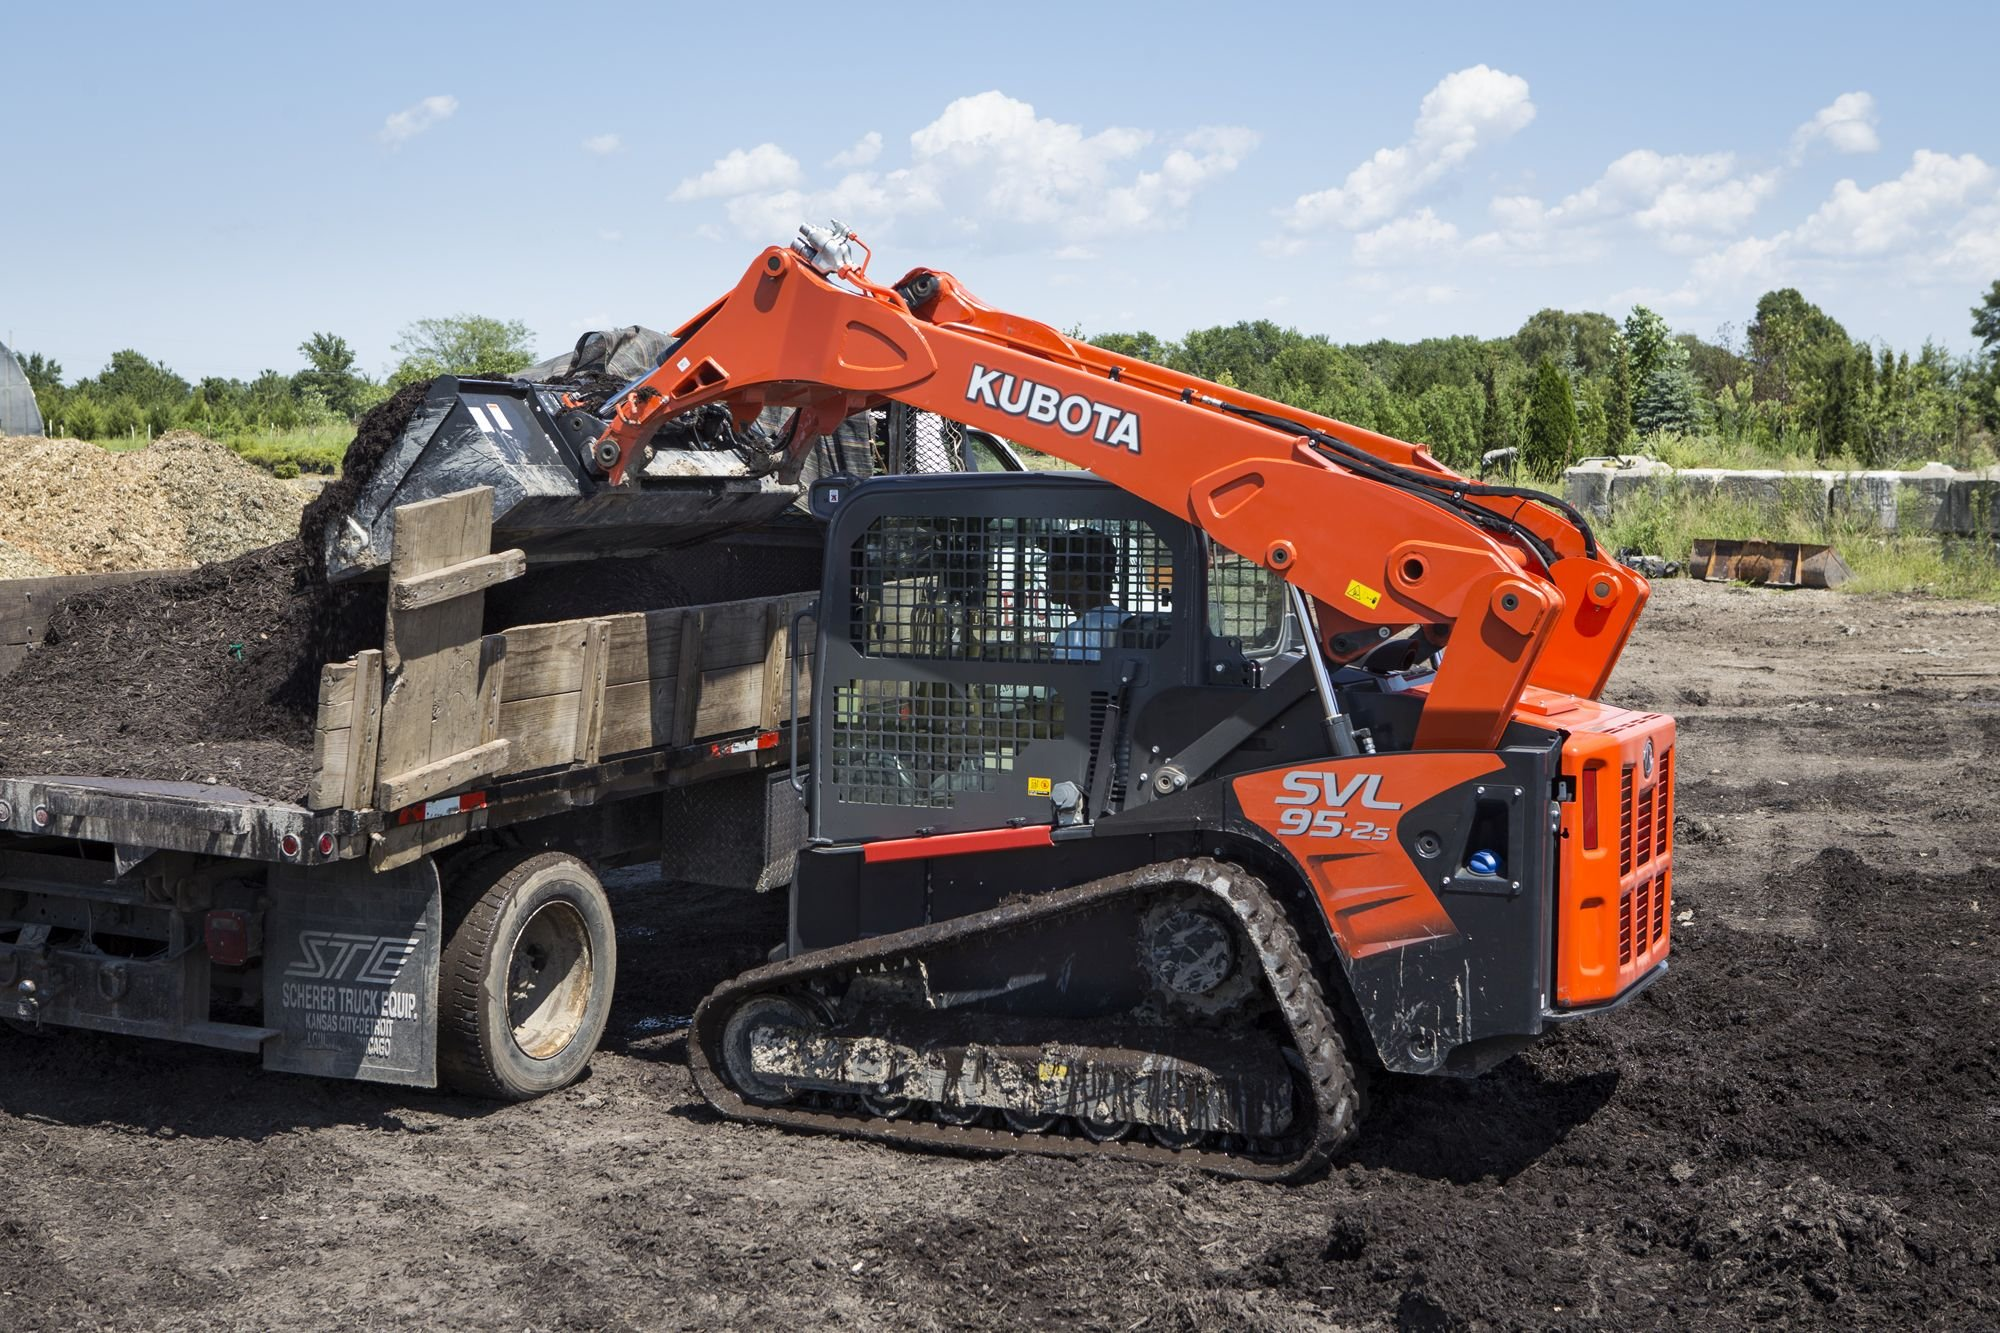 Kubota's Compact Track Loader Provides Multitasking Muscle